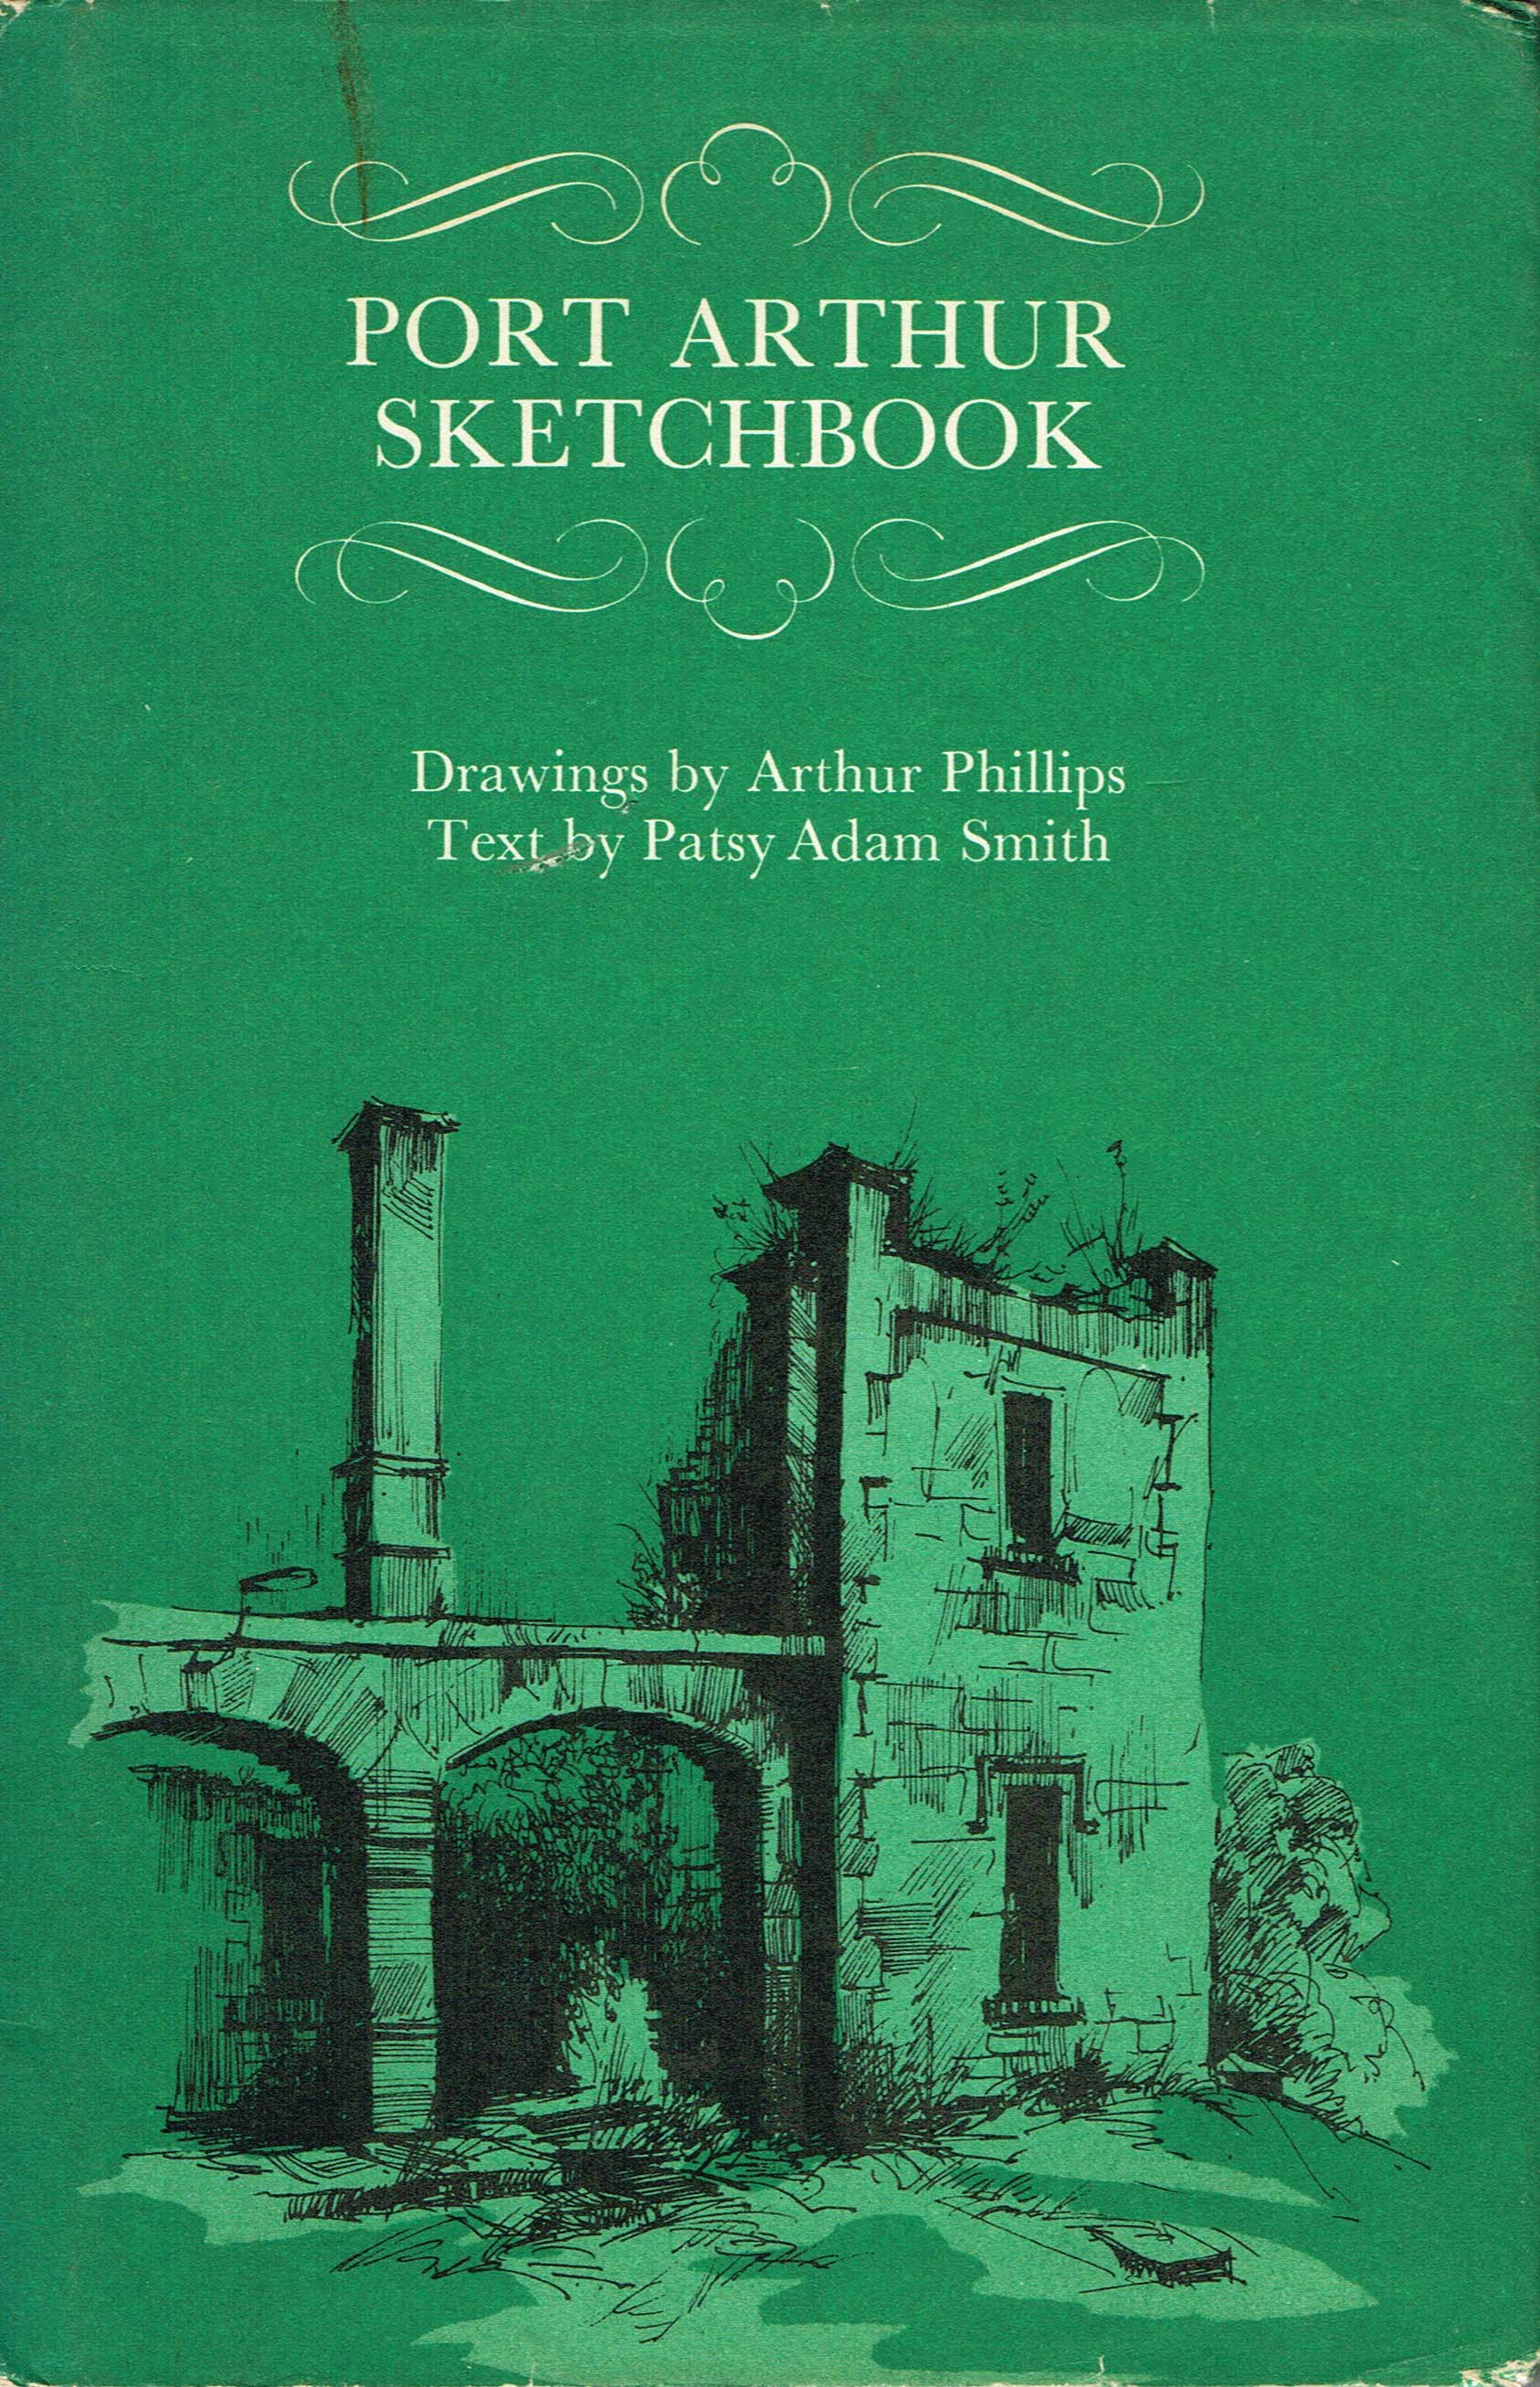 Port Arthur Sketchbook   Drawing by Authur Phillips, text by Patsy Adam Smith